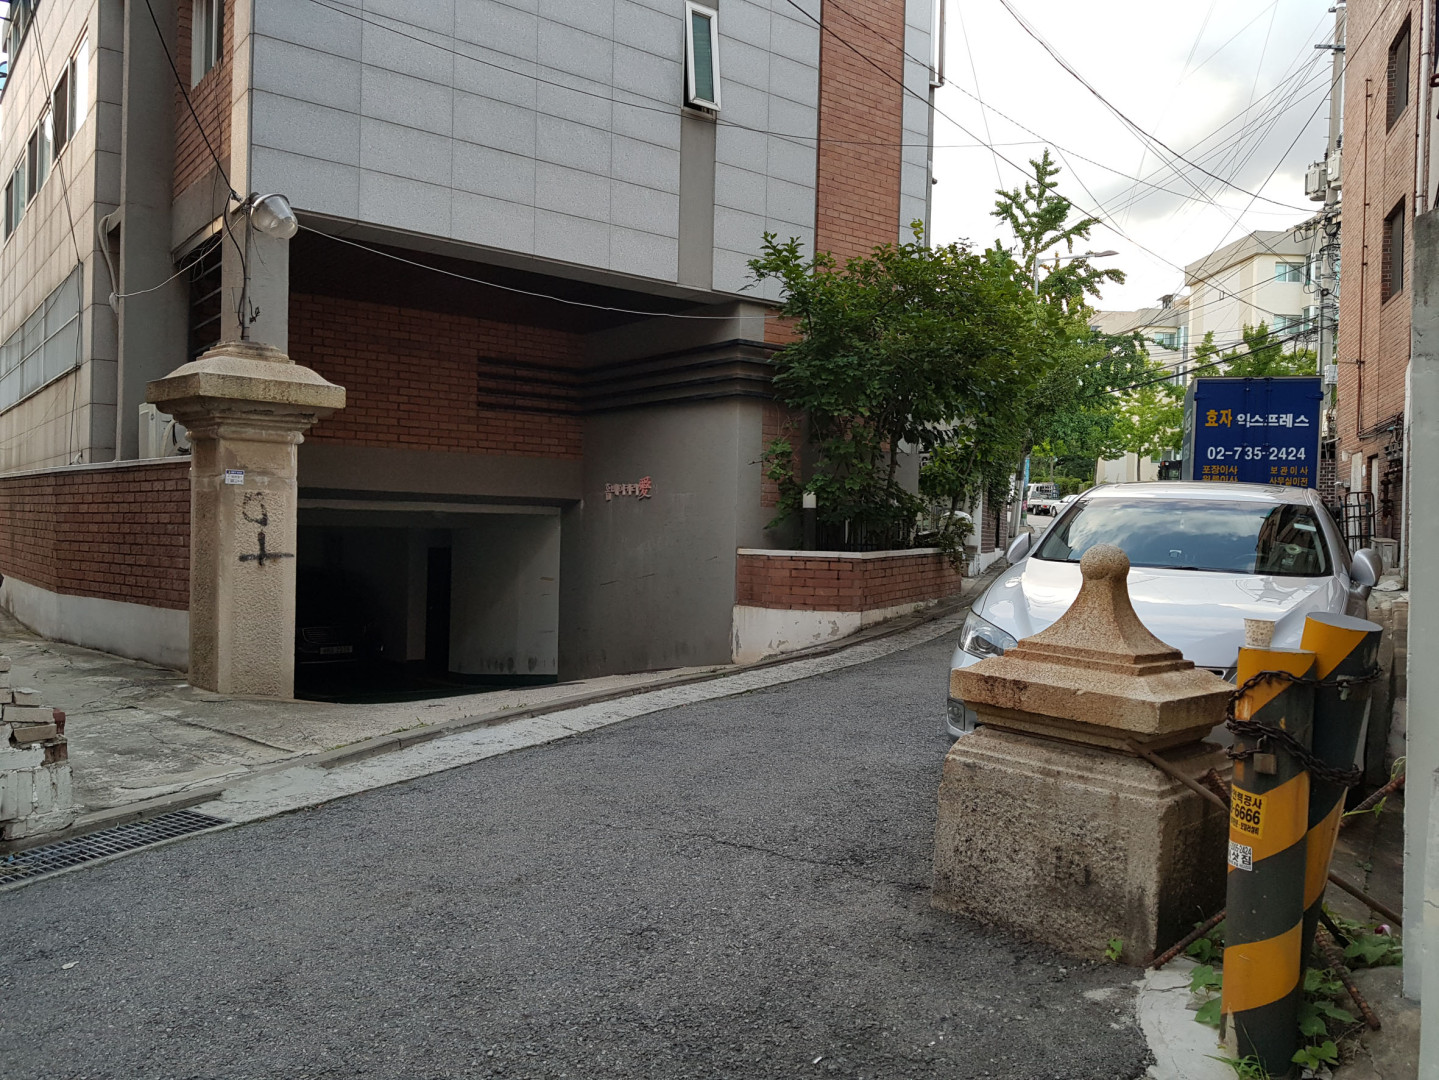 Yun Deok-yeong's House (Byuksusanjang) in a quiet side street on an overcast day